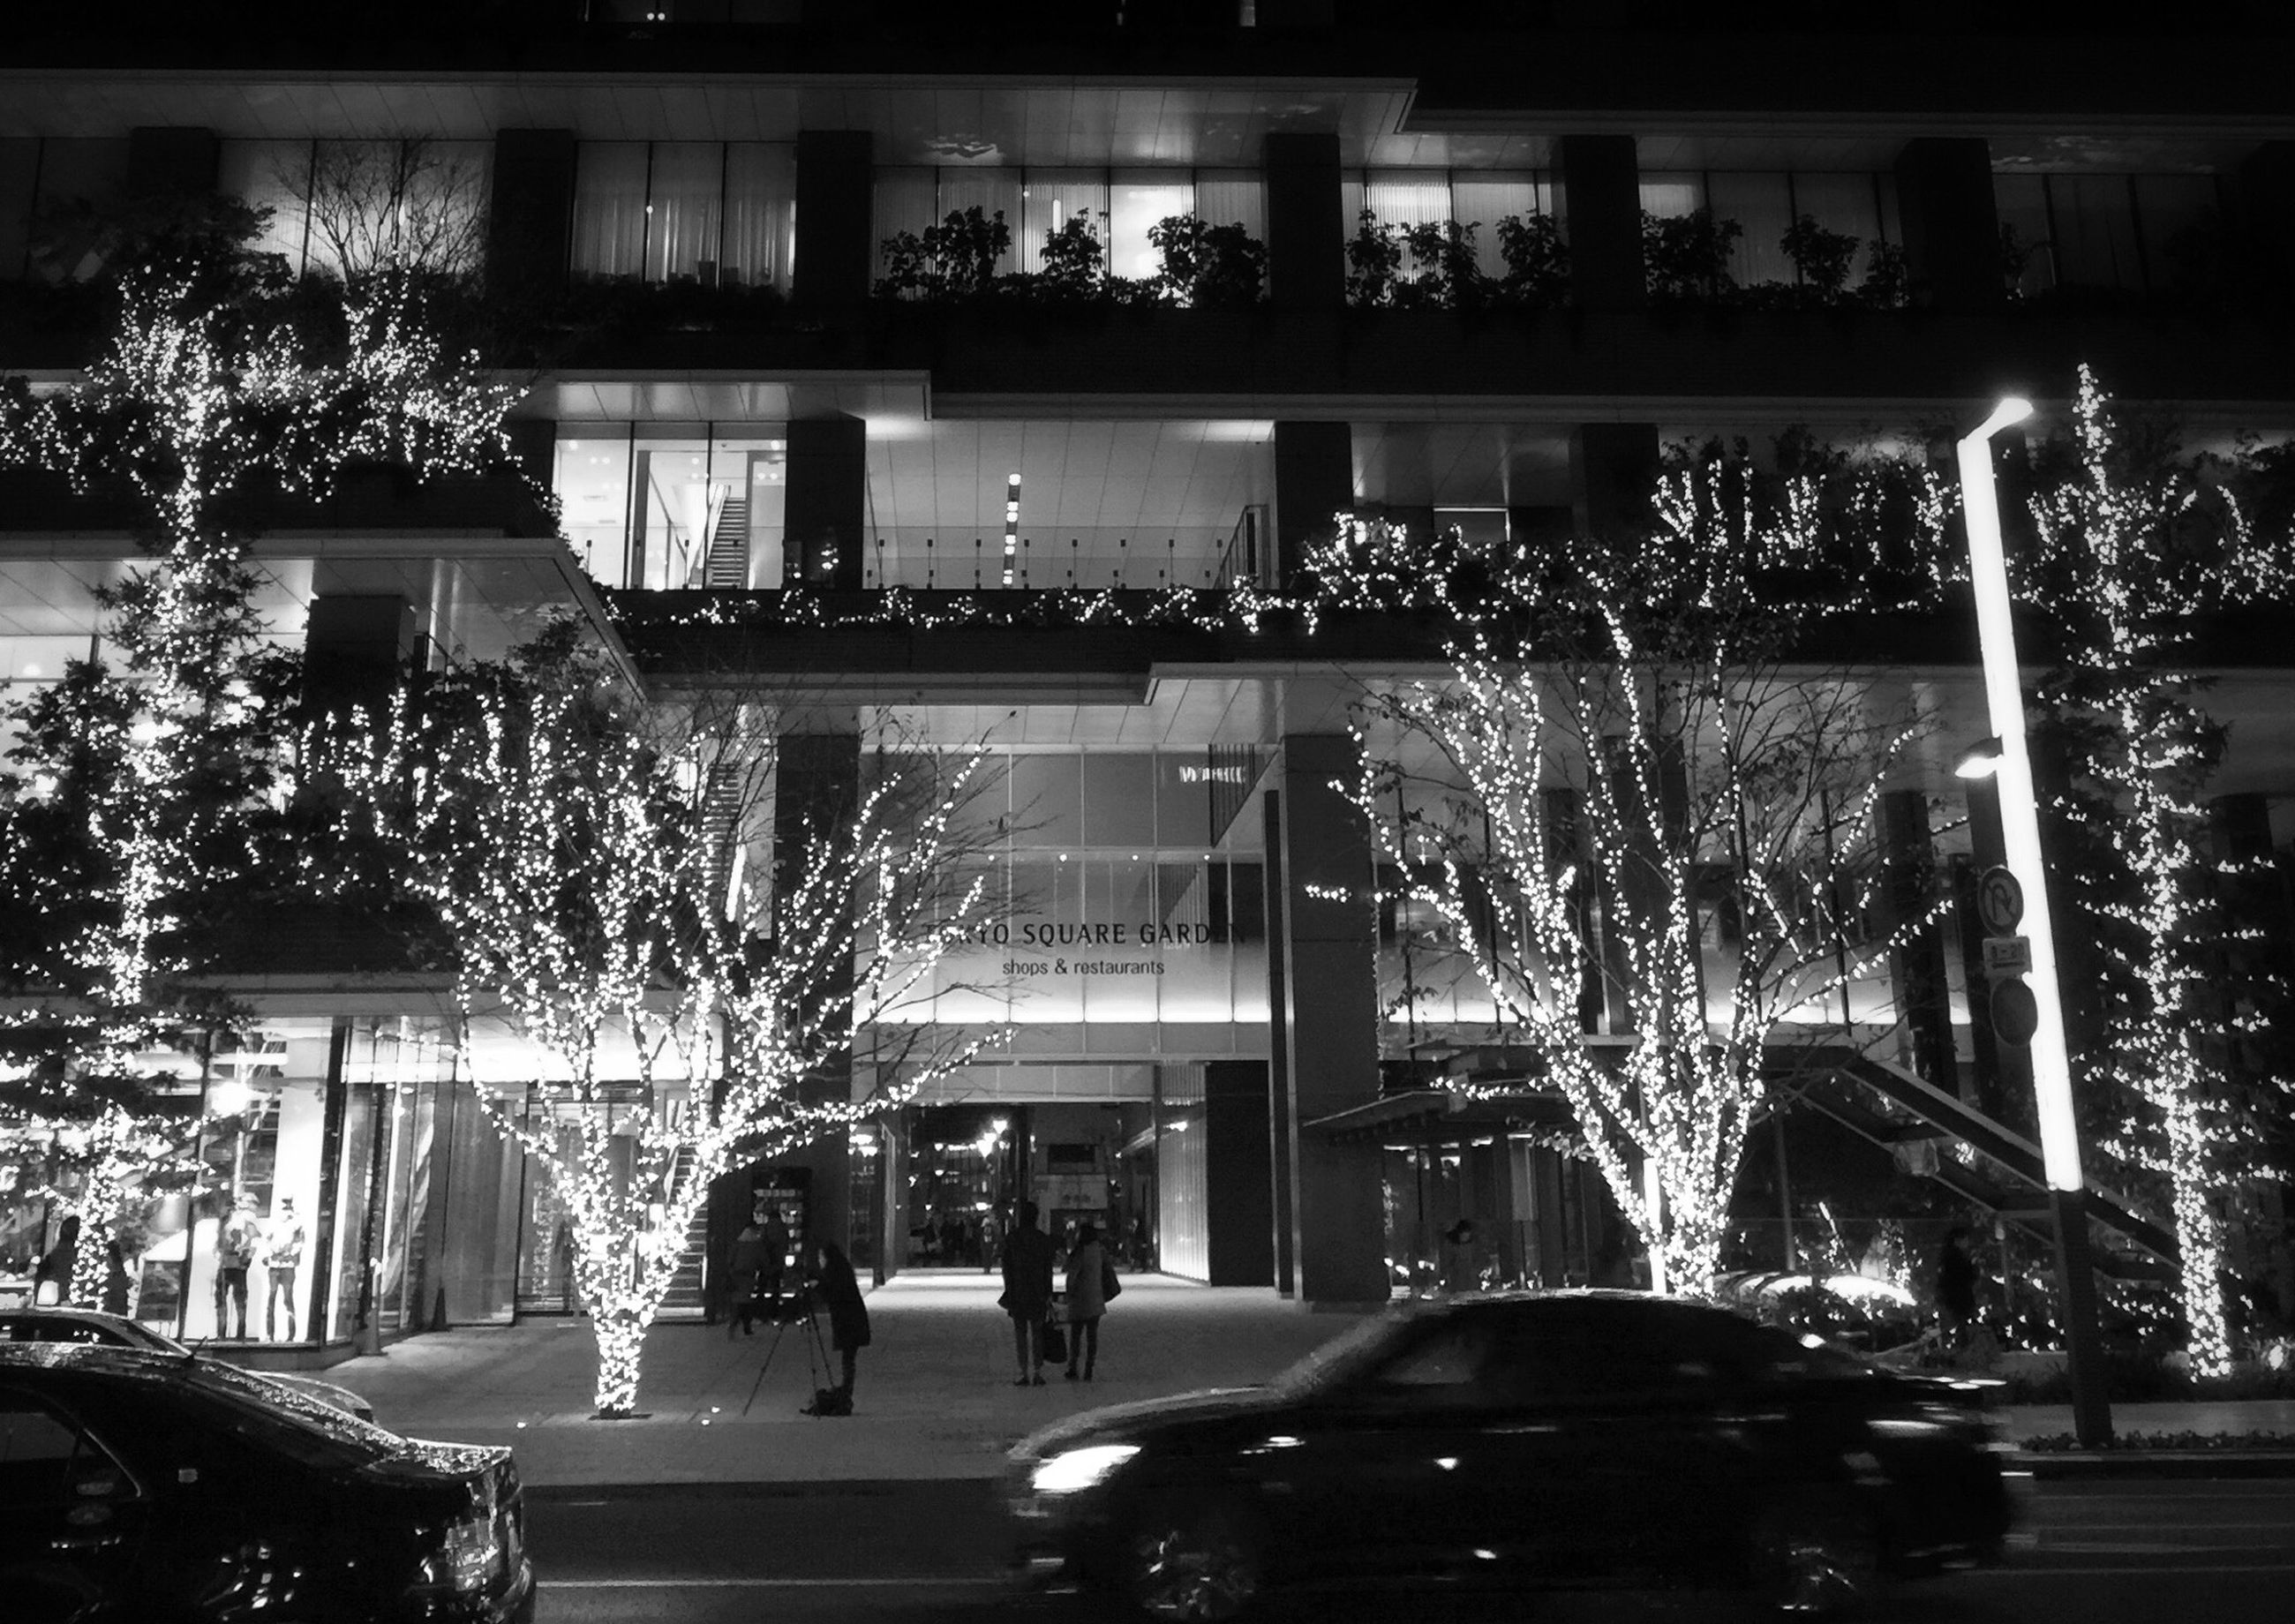 illuminated, architecture, built structure, building exterior, tree, night, lighting equipment, decoration, city, incidental people, potted plant, in a row, window, building, outdoors, house, no people, low angle view, glass - material